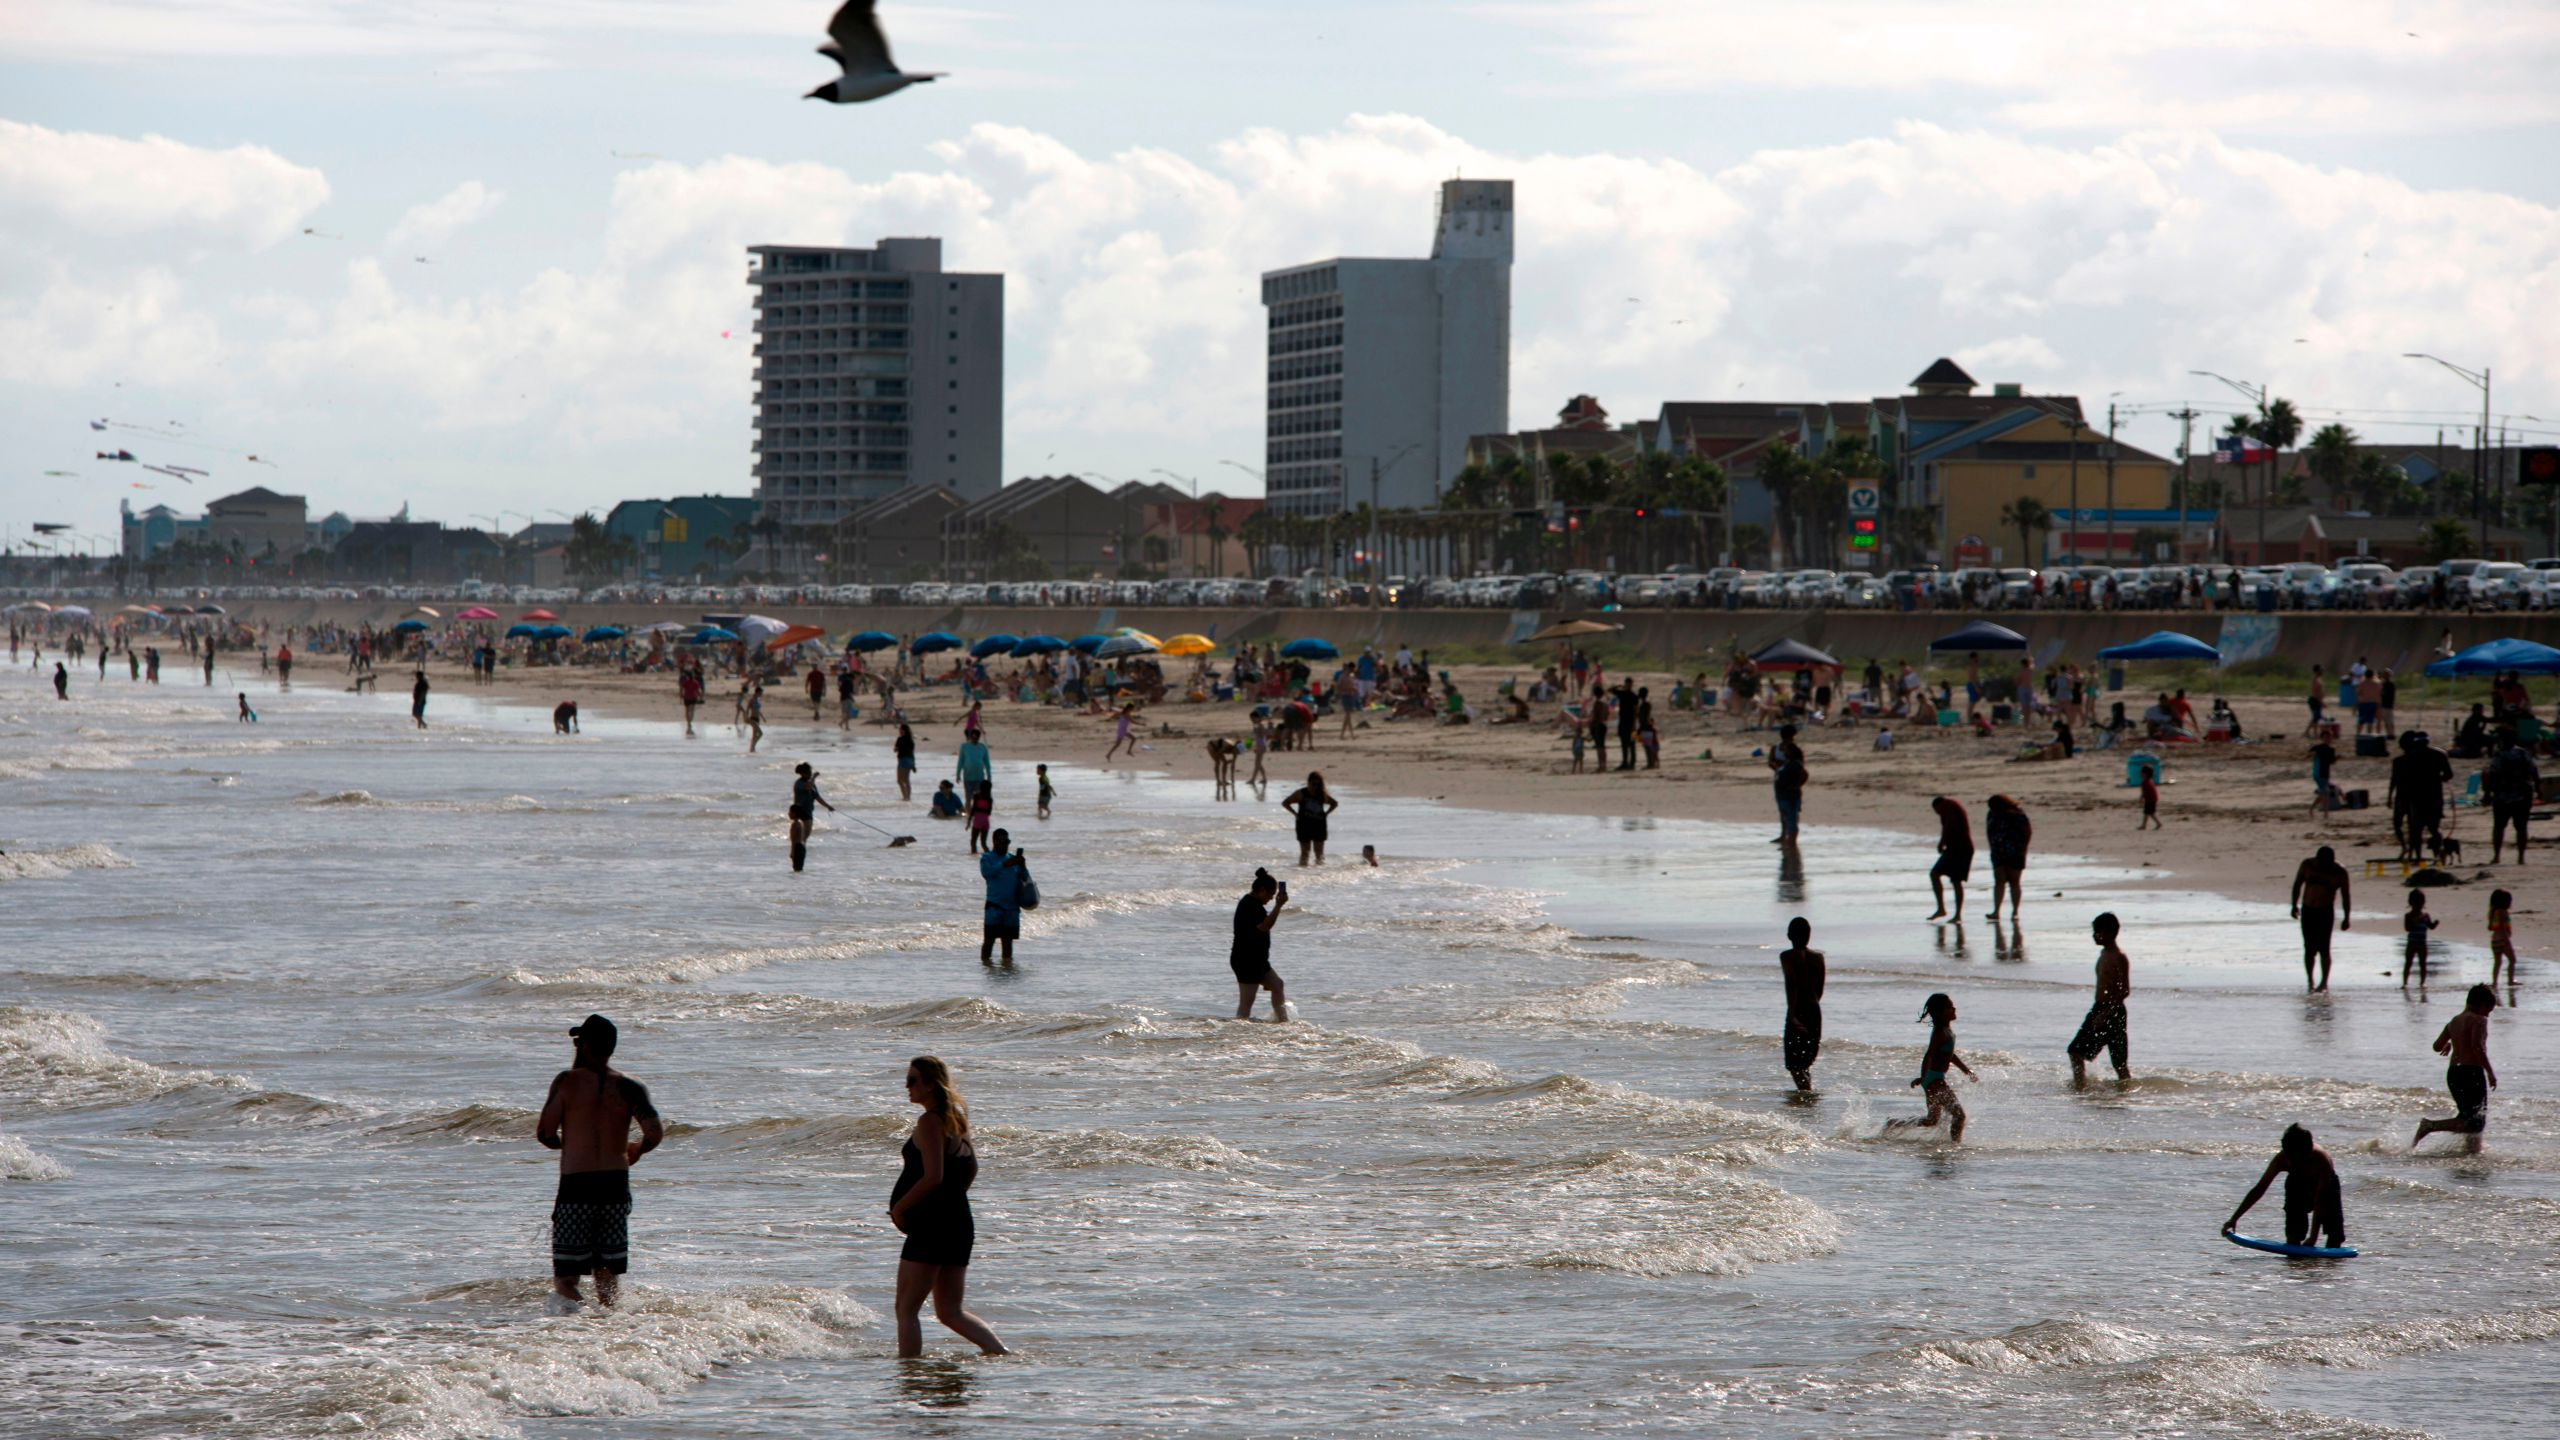 Beachgoers enjoy a day of sunshine at Galveston Beach on May 2, 2020 in Galveston, Texas. (Photo by MARK FELIX/AFP /AFP via Getty Images)